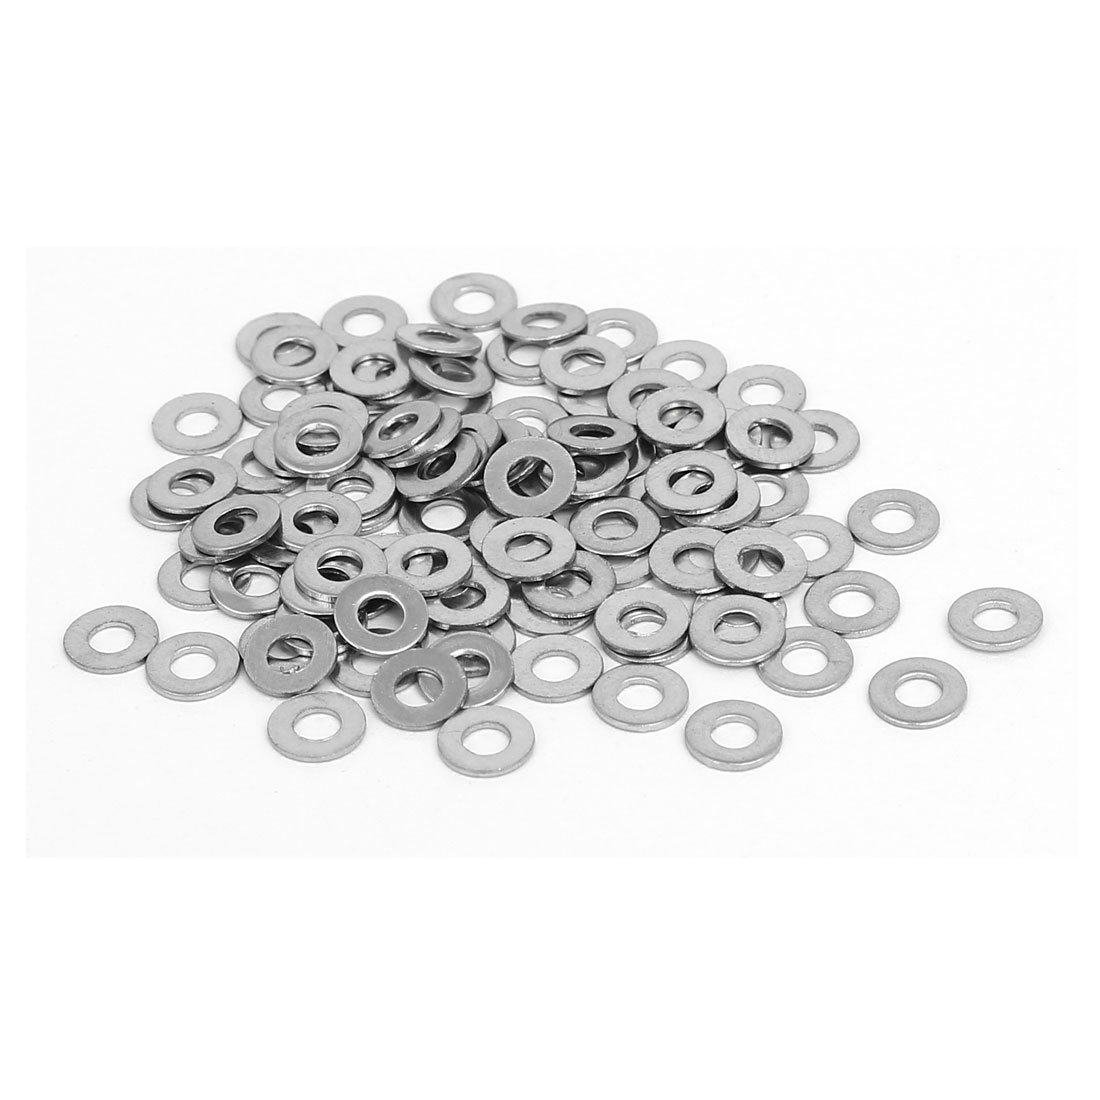 M2.5x6mmx0.5mm 316 Stainless Steel Flat Washers Gasket Fastener 100pcs